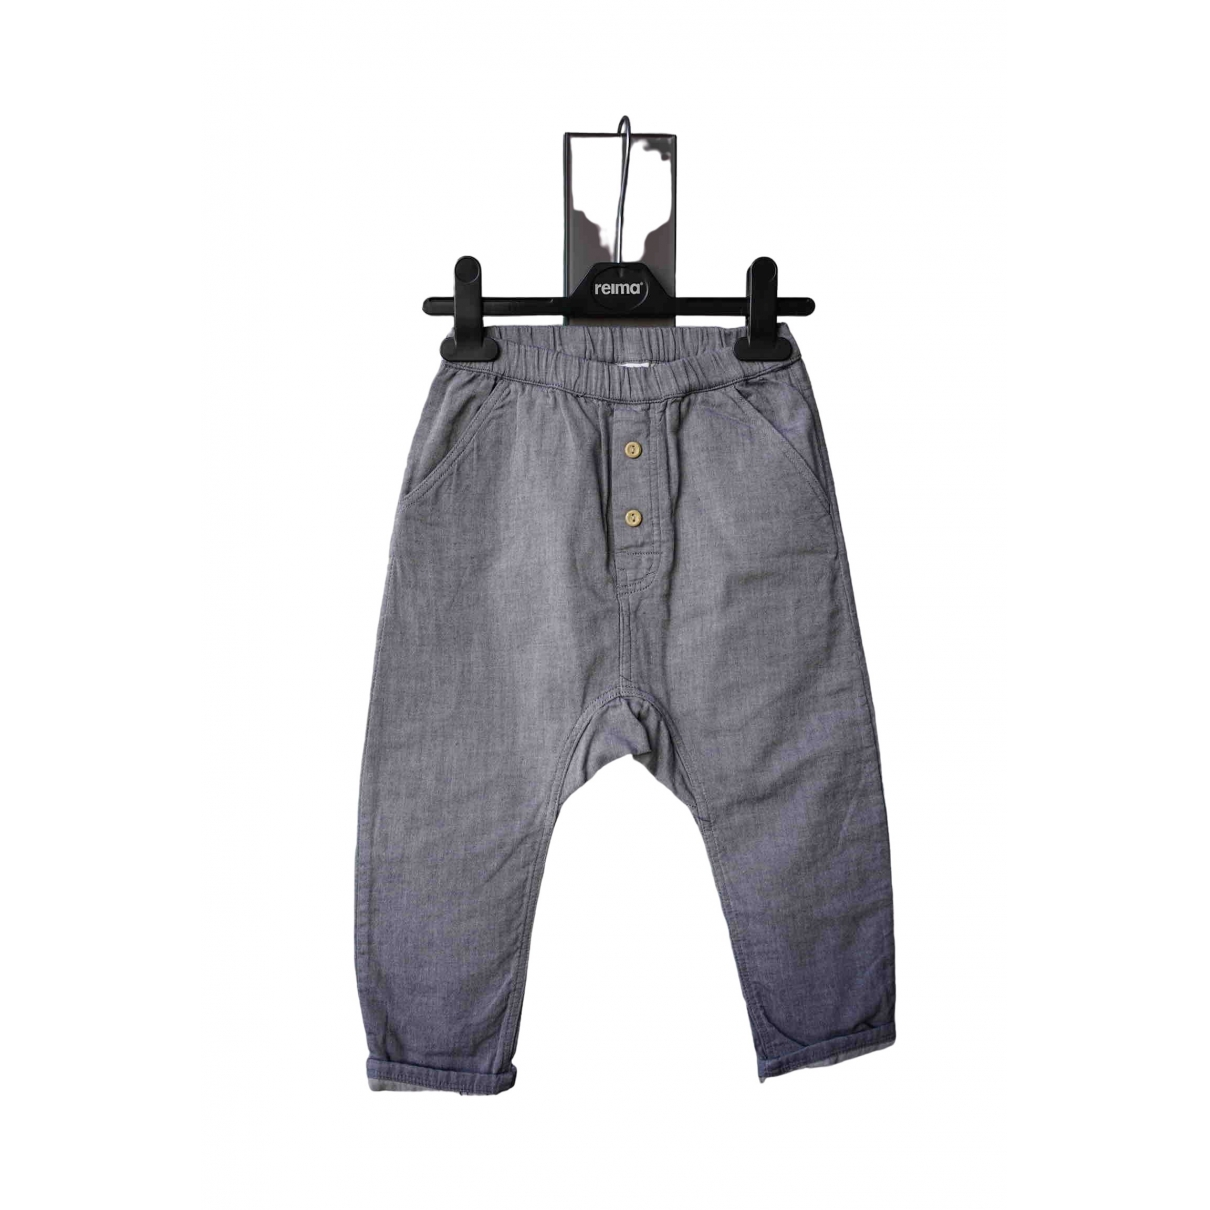 H&m Conscious Exclusive \N Grey Cotton Trousers for Kids 3 years - until 39 inches UK